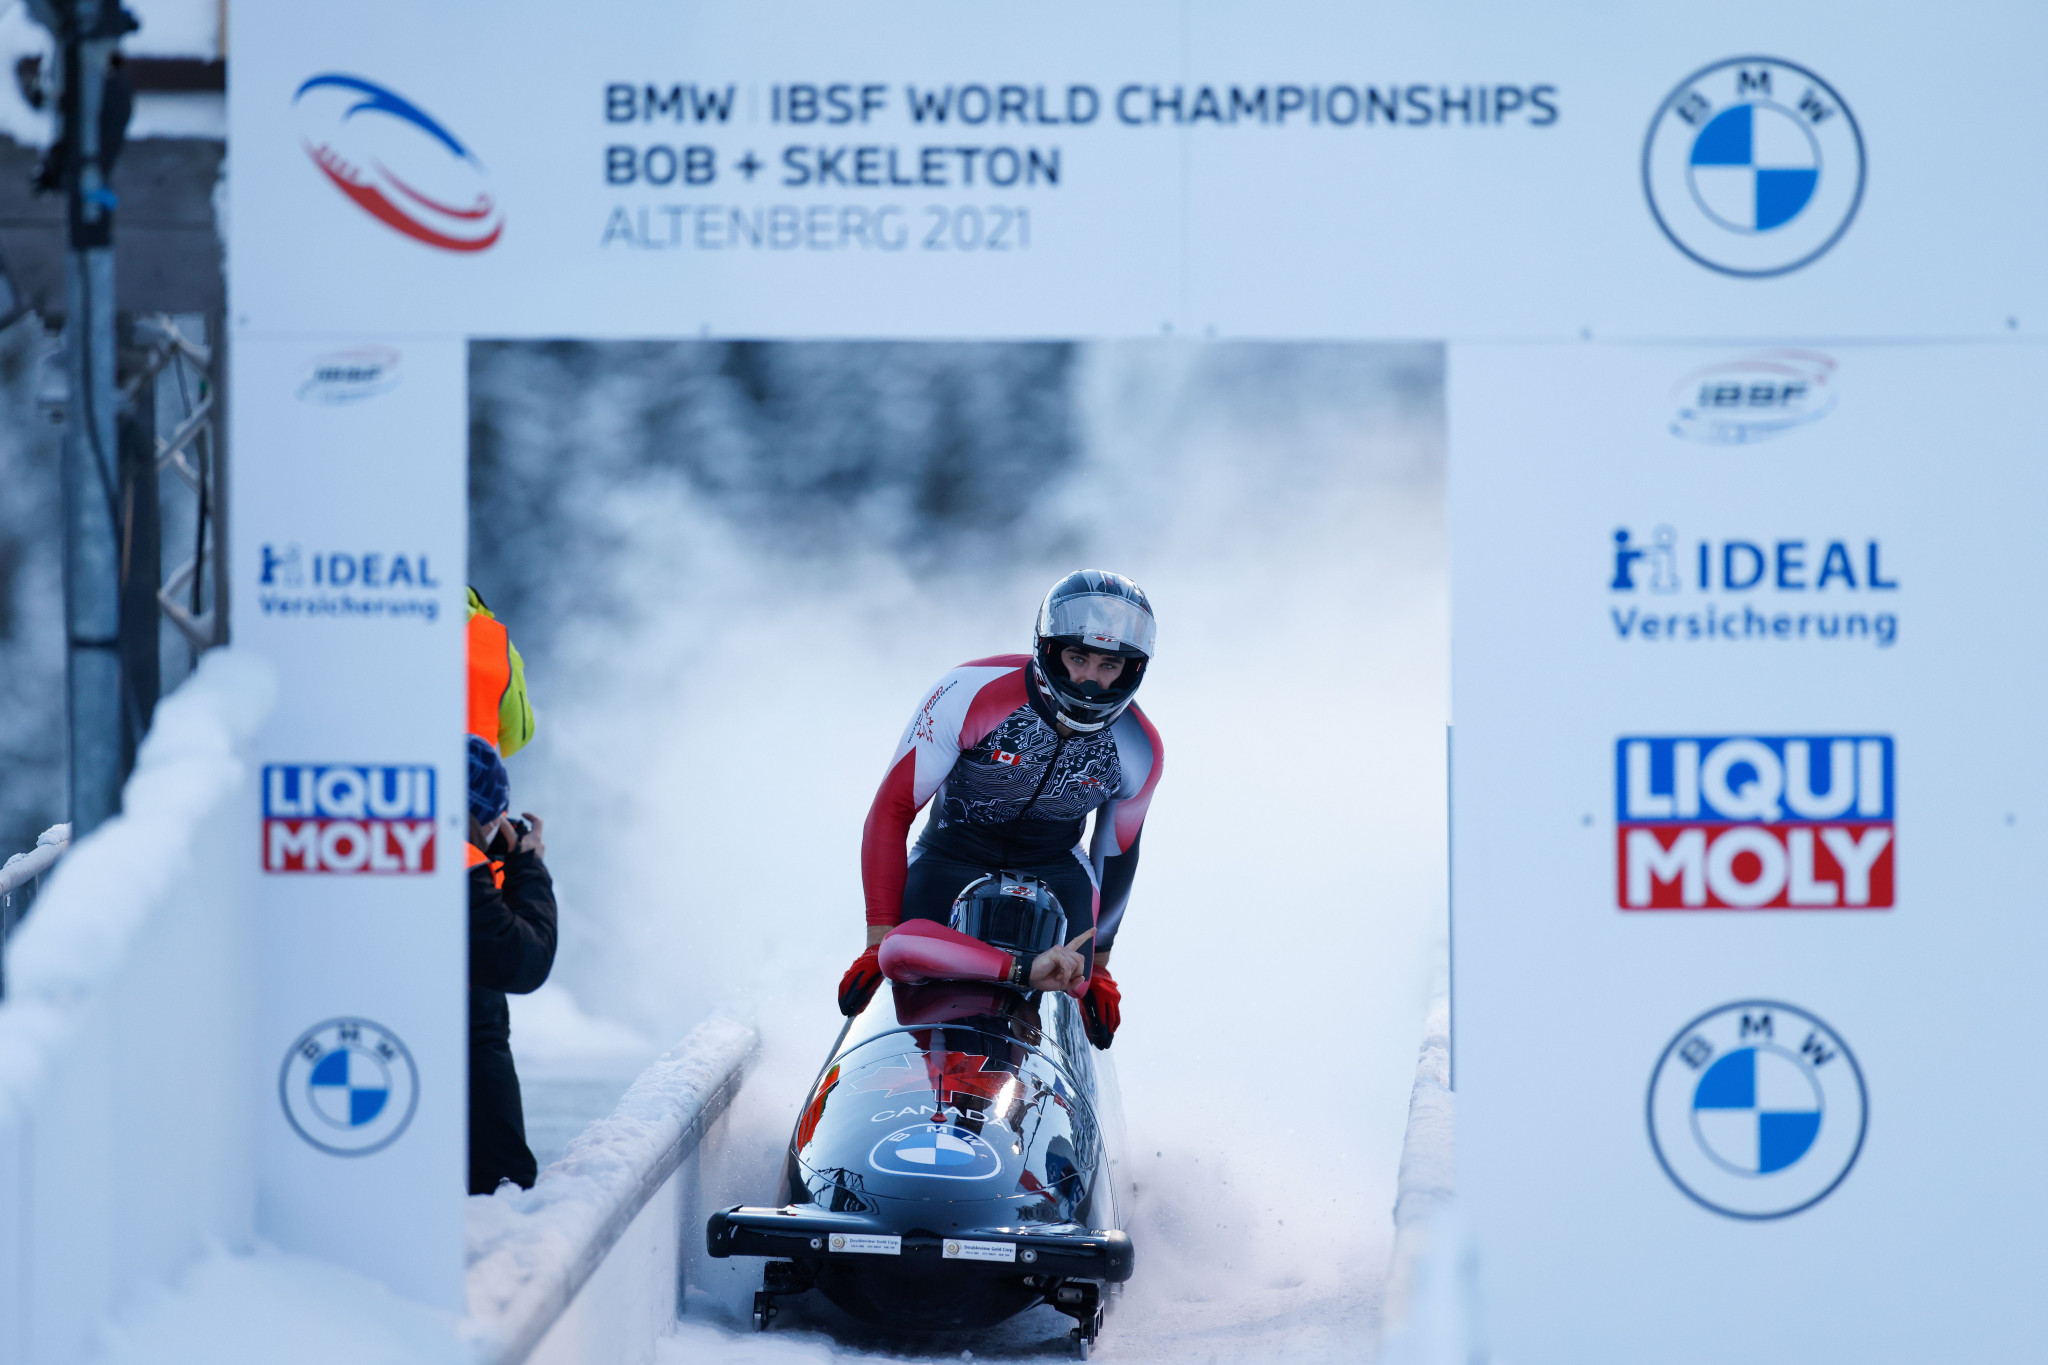 Altenberg held the 2021 IBSF World Championships ©Getty Images